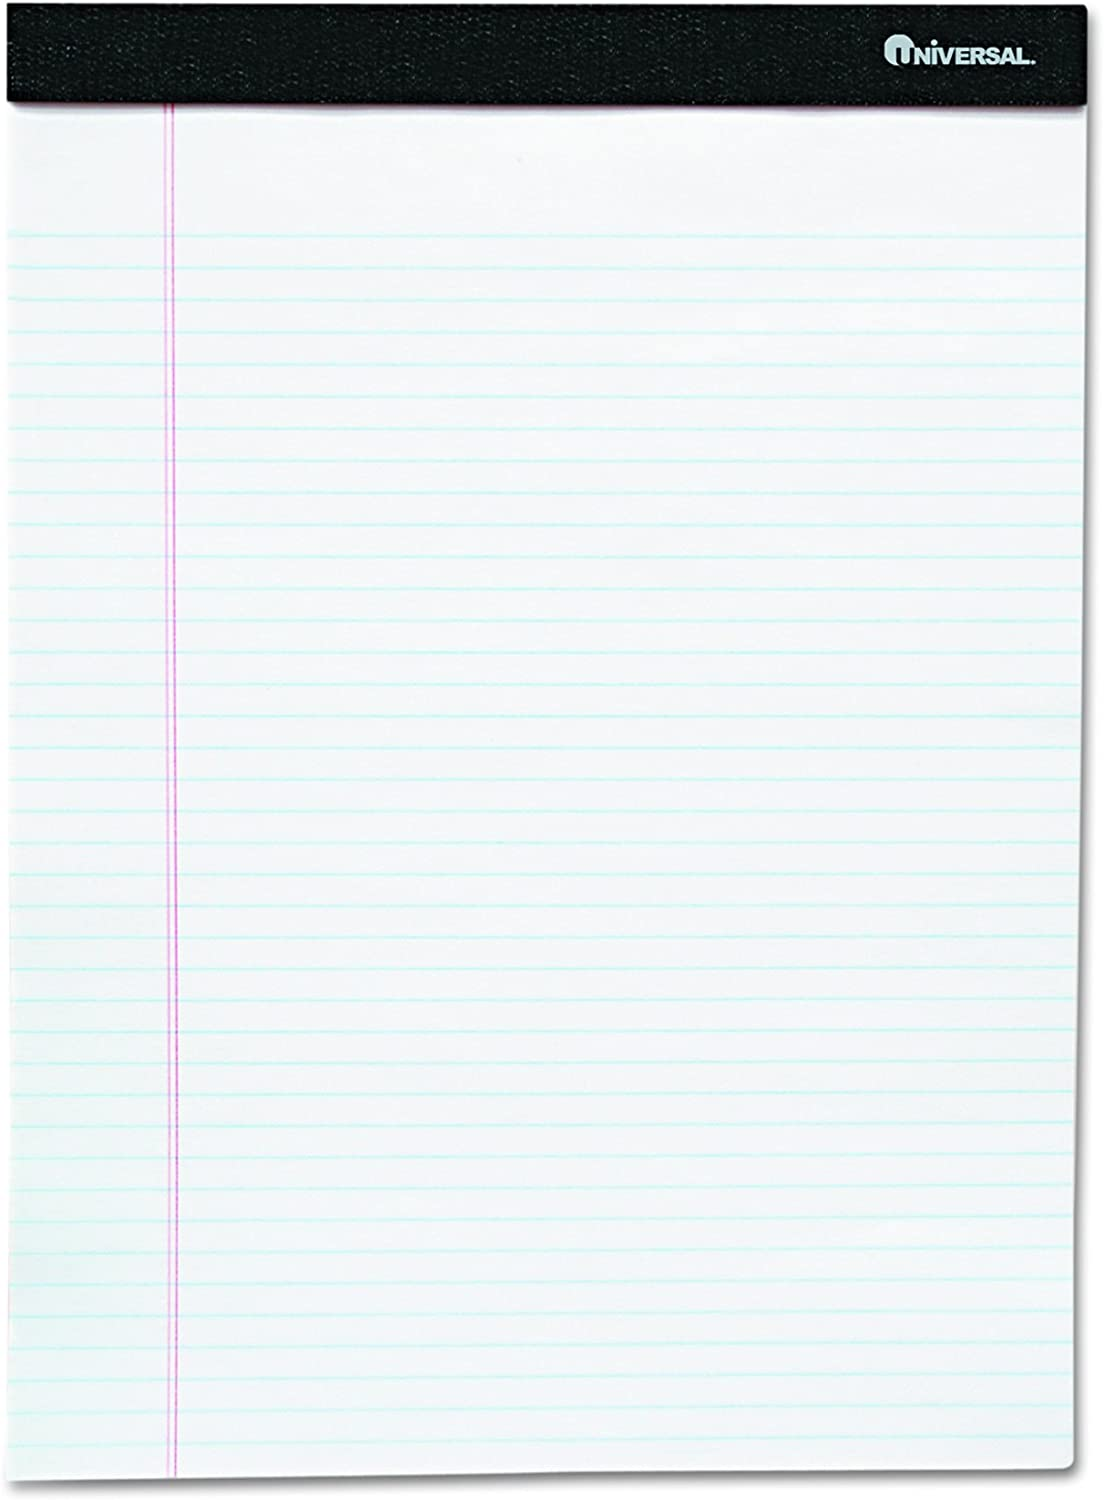 Universal 57300 Premium Ruled Free Surprise price Shipping New Writing Pads x Legal White 8 5